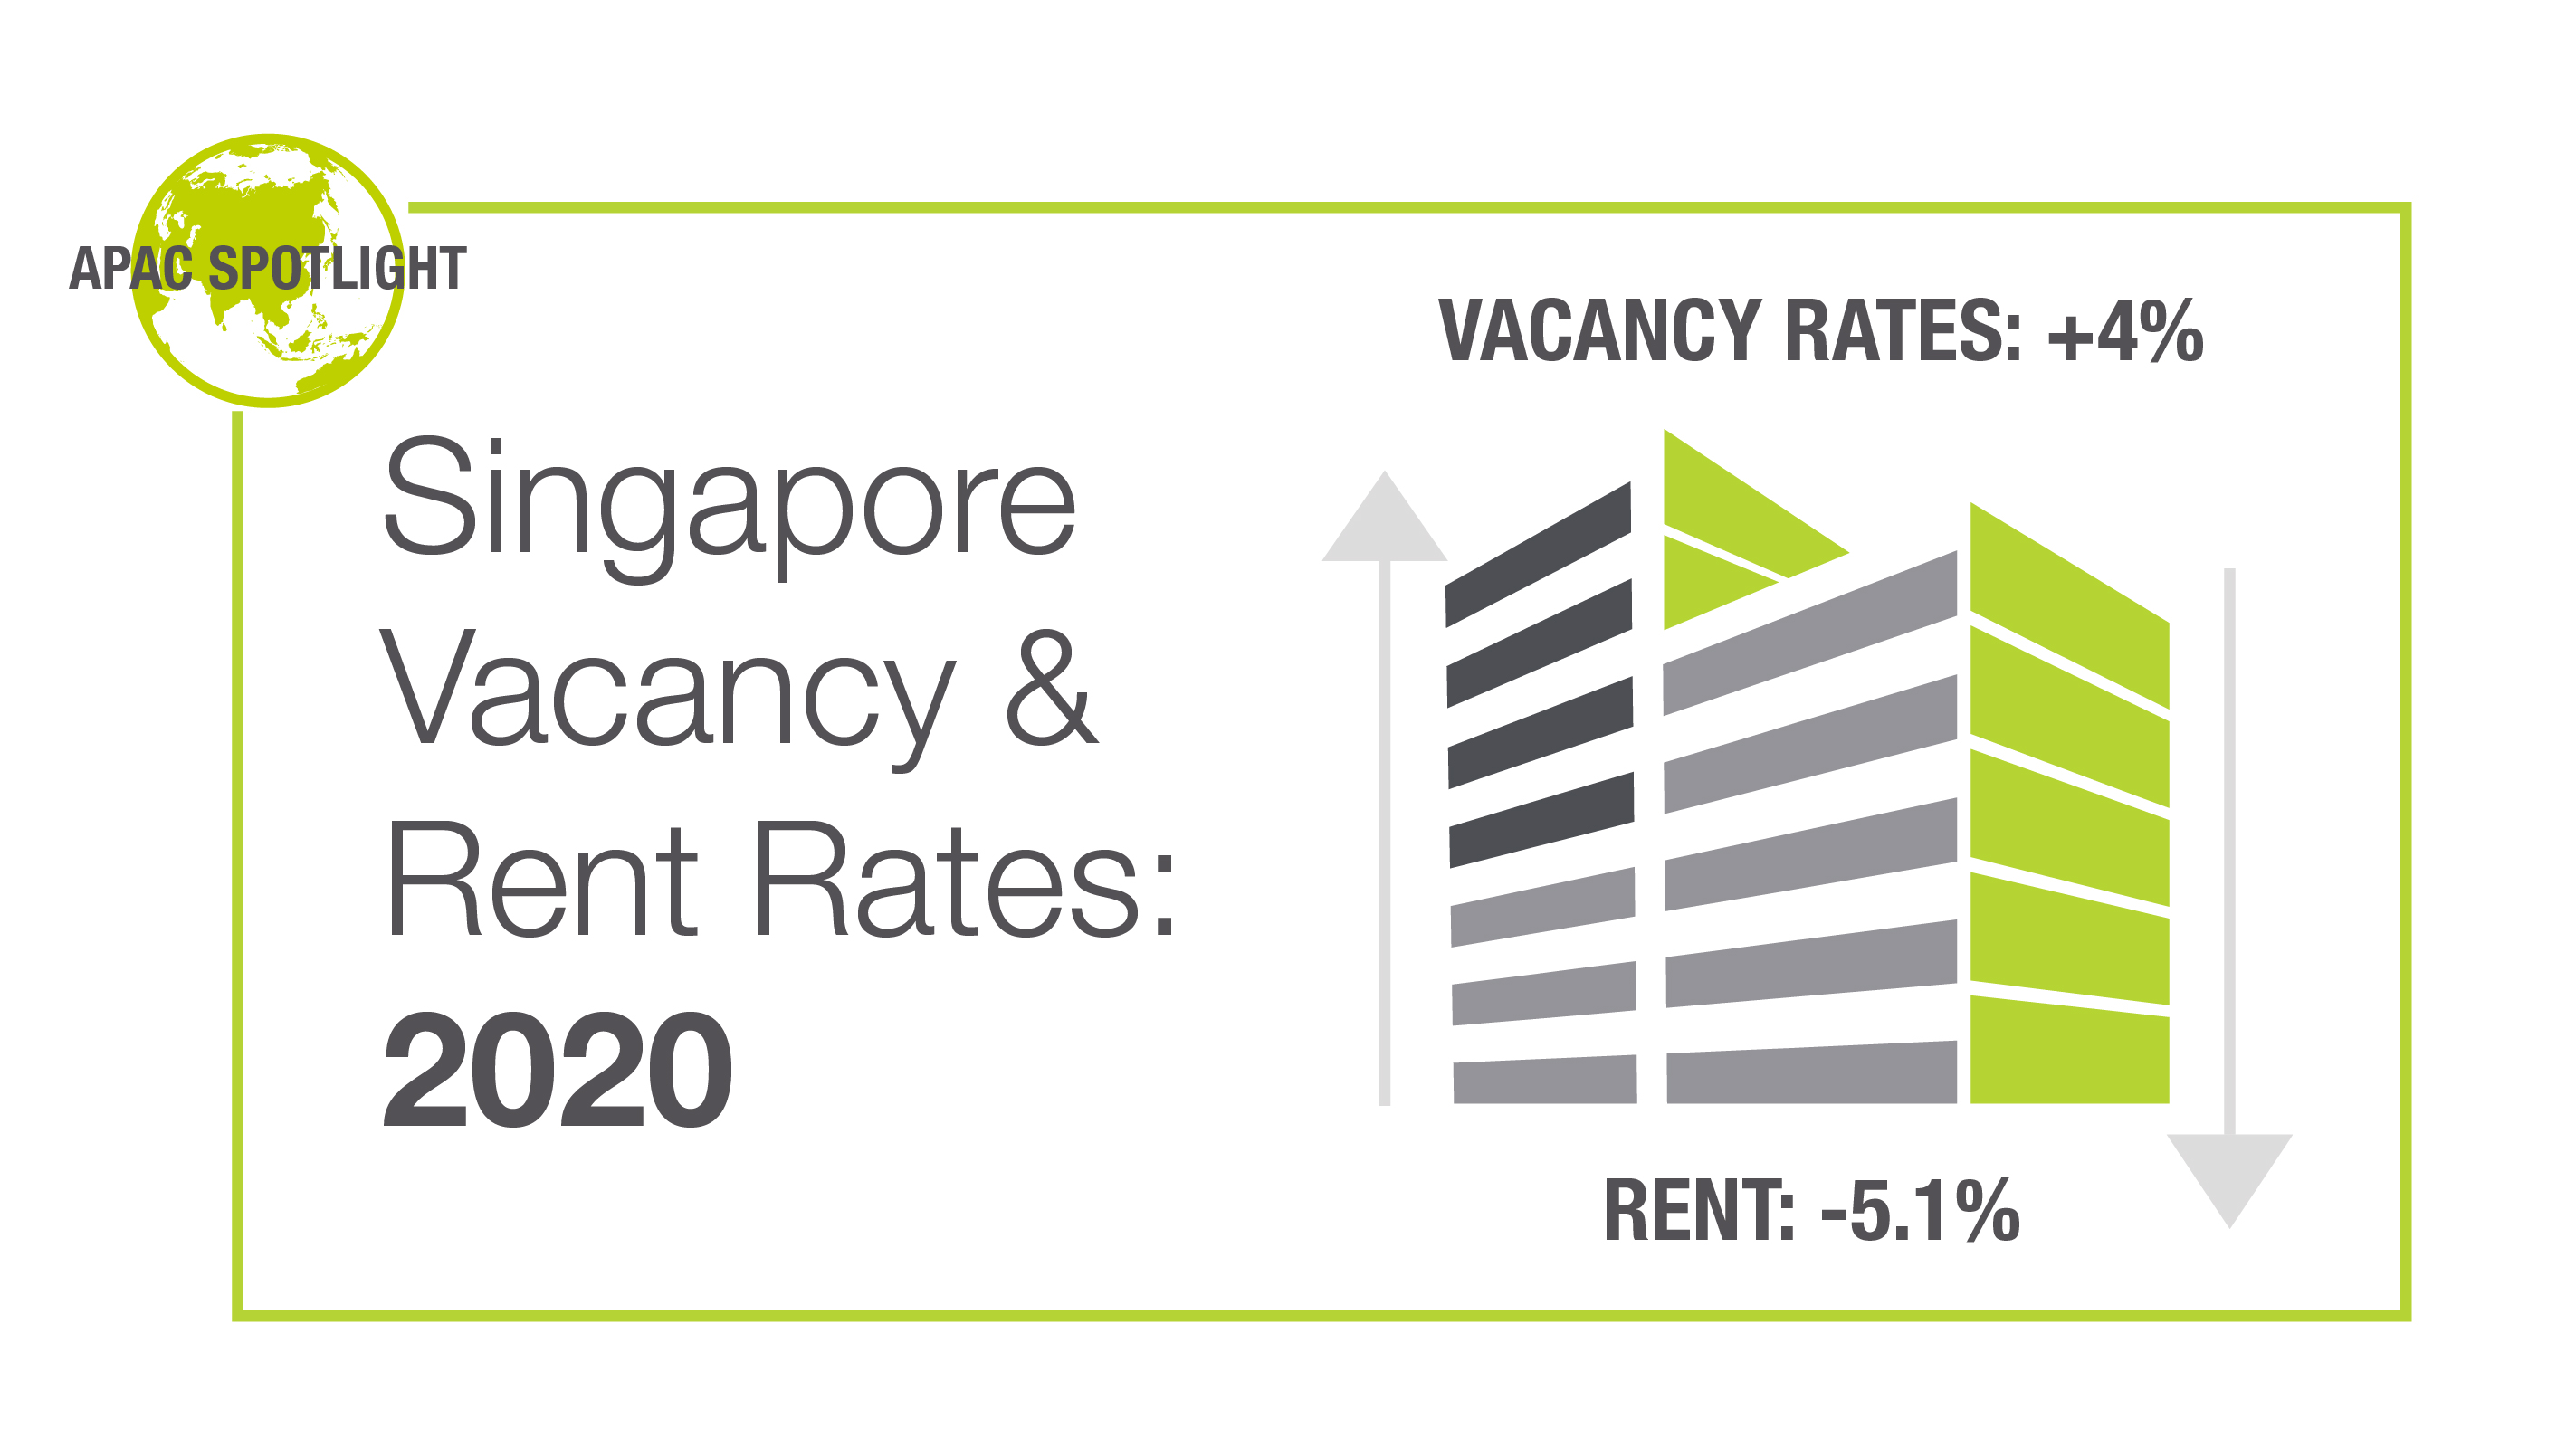 Singapore vacancy and rent rates